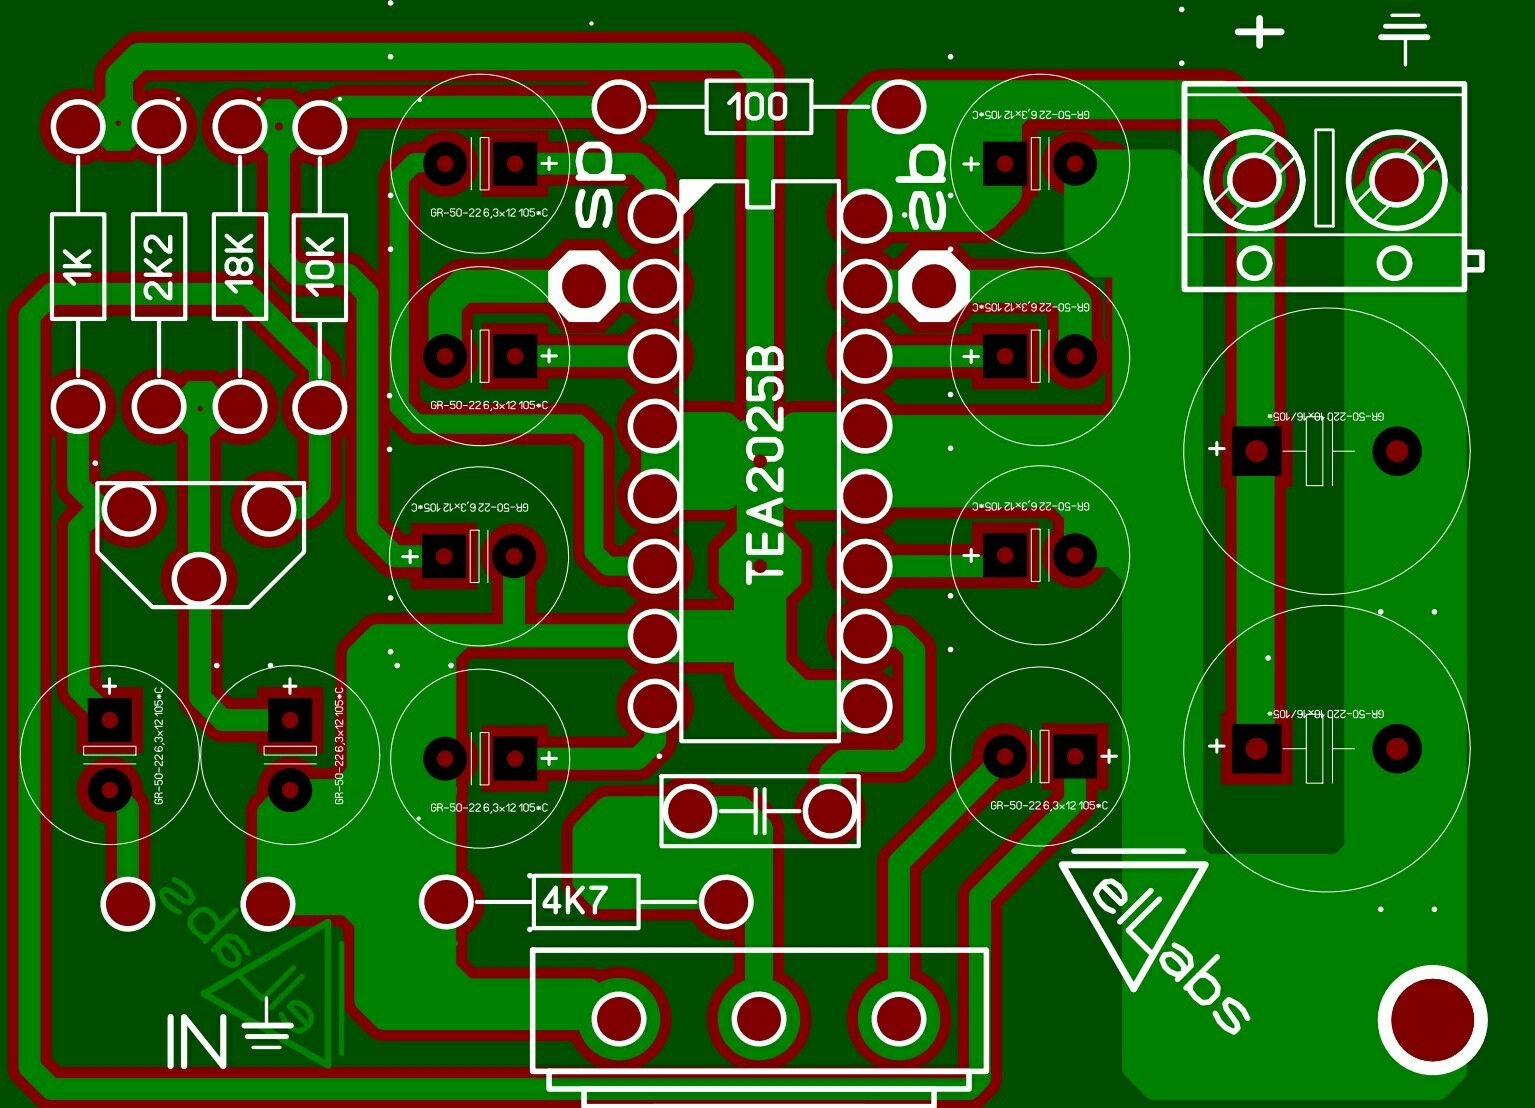 Find This Pin And More On Amplifier Circuit By Razzyl T 120w With Lm12 Circuitschematic Mini Guitar Clean Tea2025b